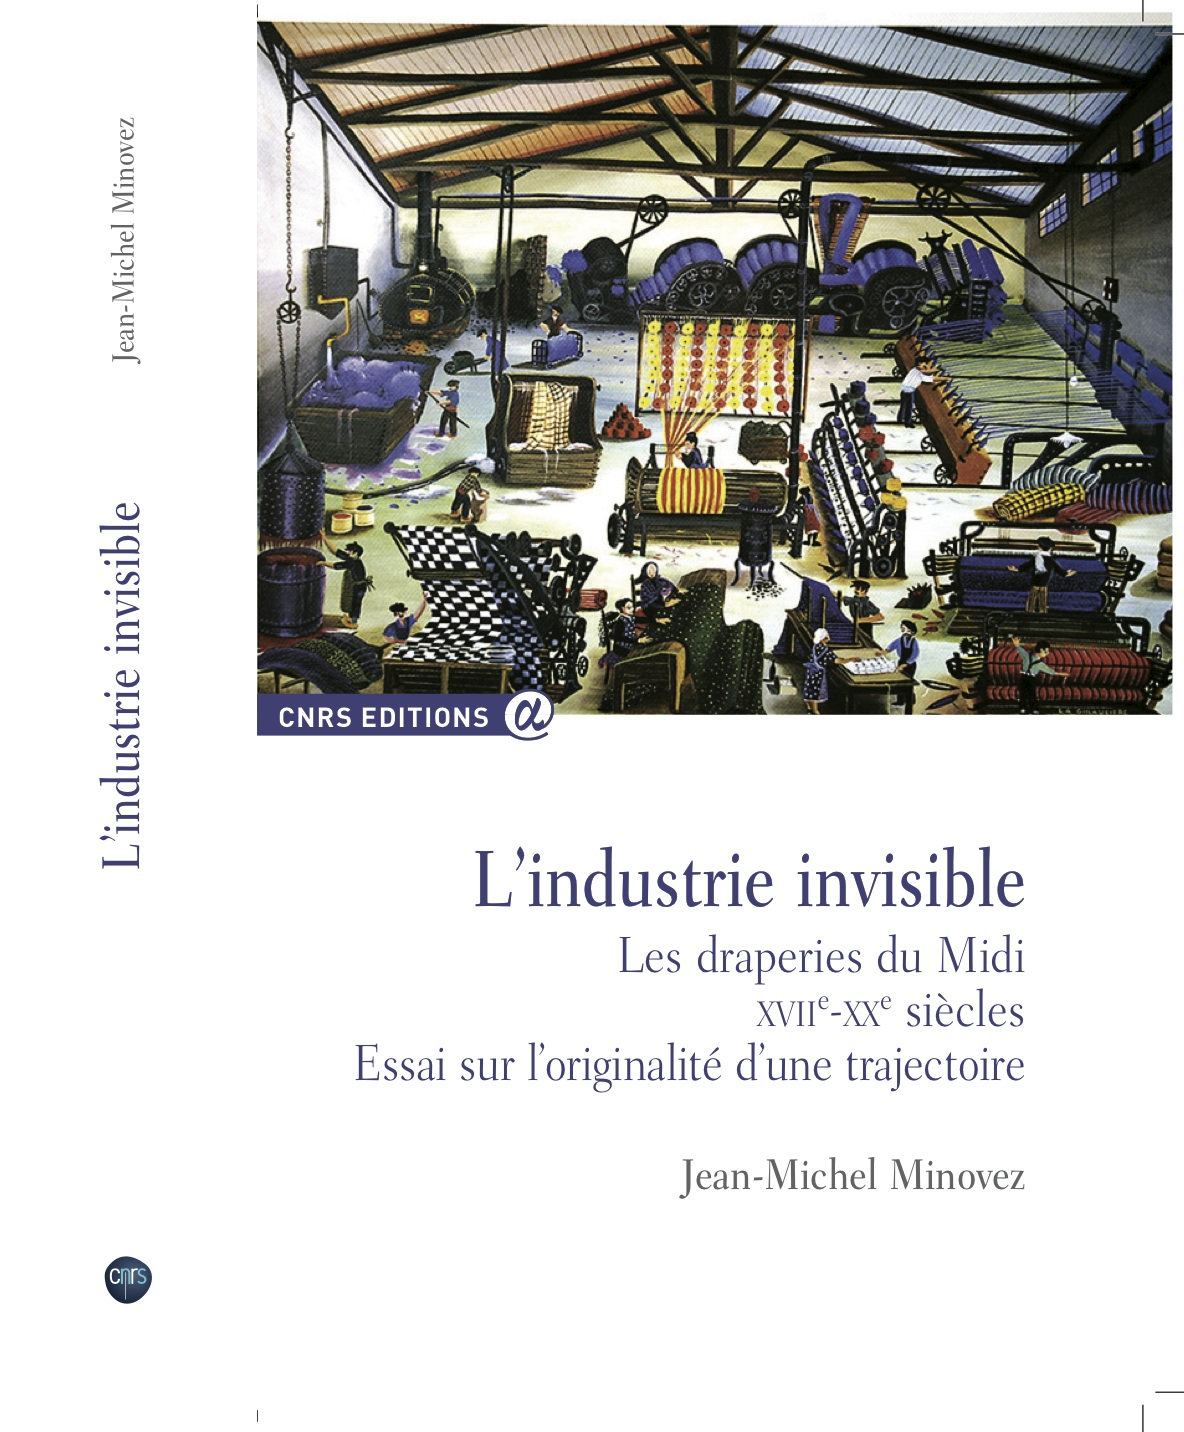 L'industrie invisible.jpg